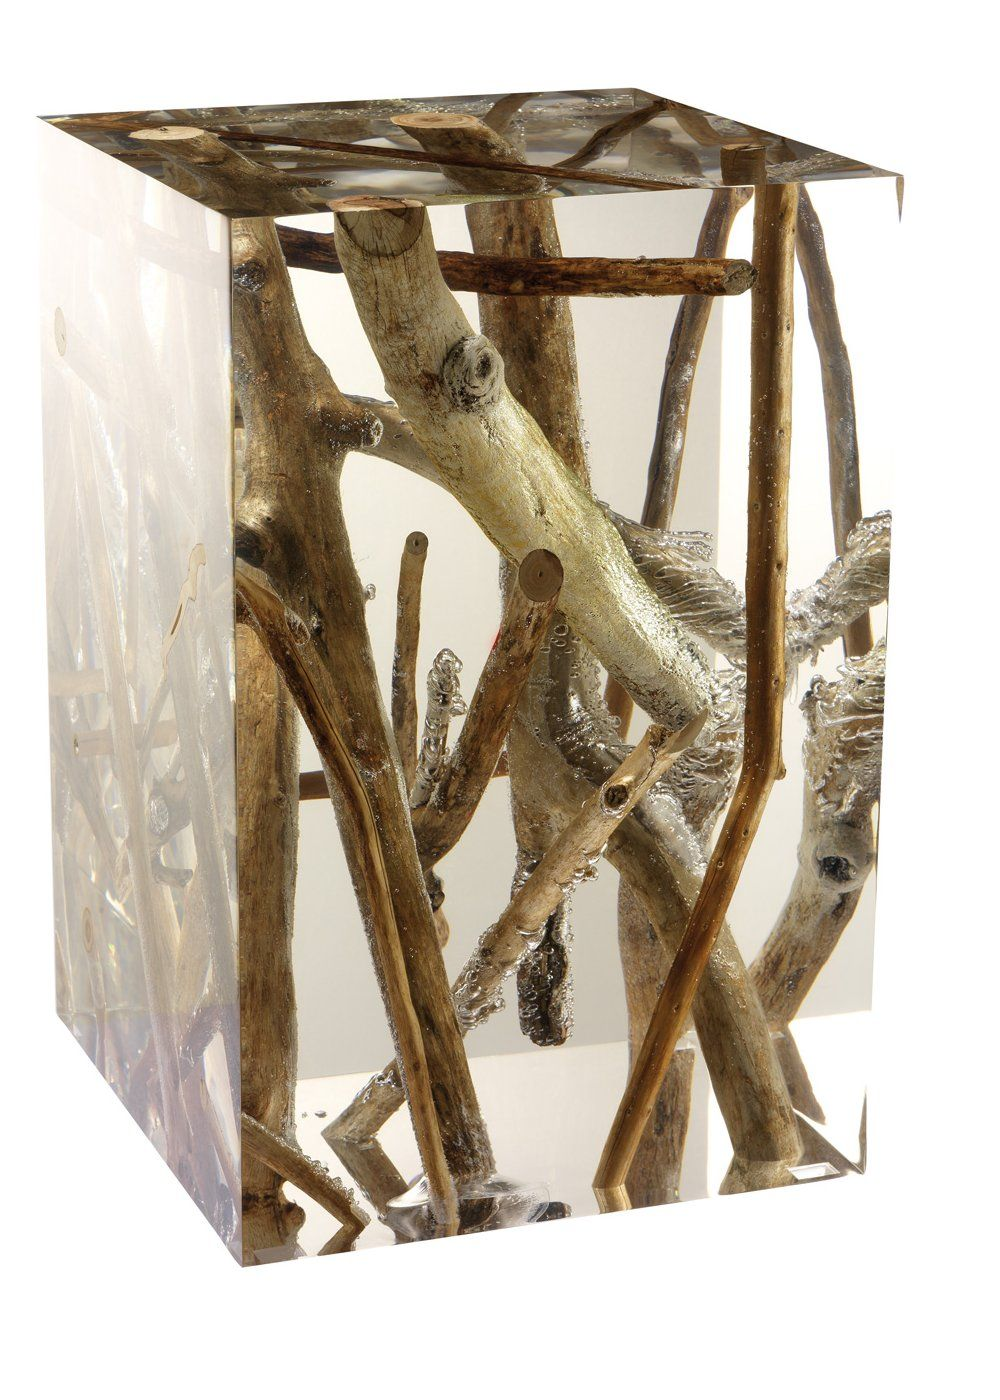 driftwood branches in acrylic side table by michael dawkins  - this acrylic table with driftwood branches by michael dawkins is justmagnificent what a showstopper